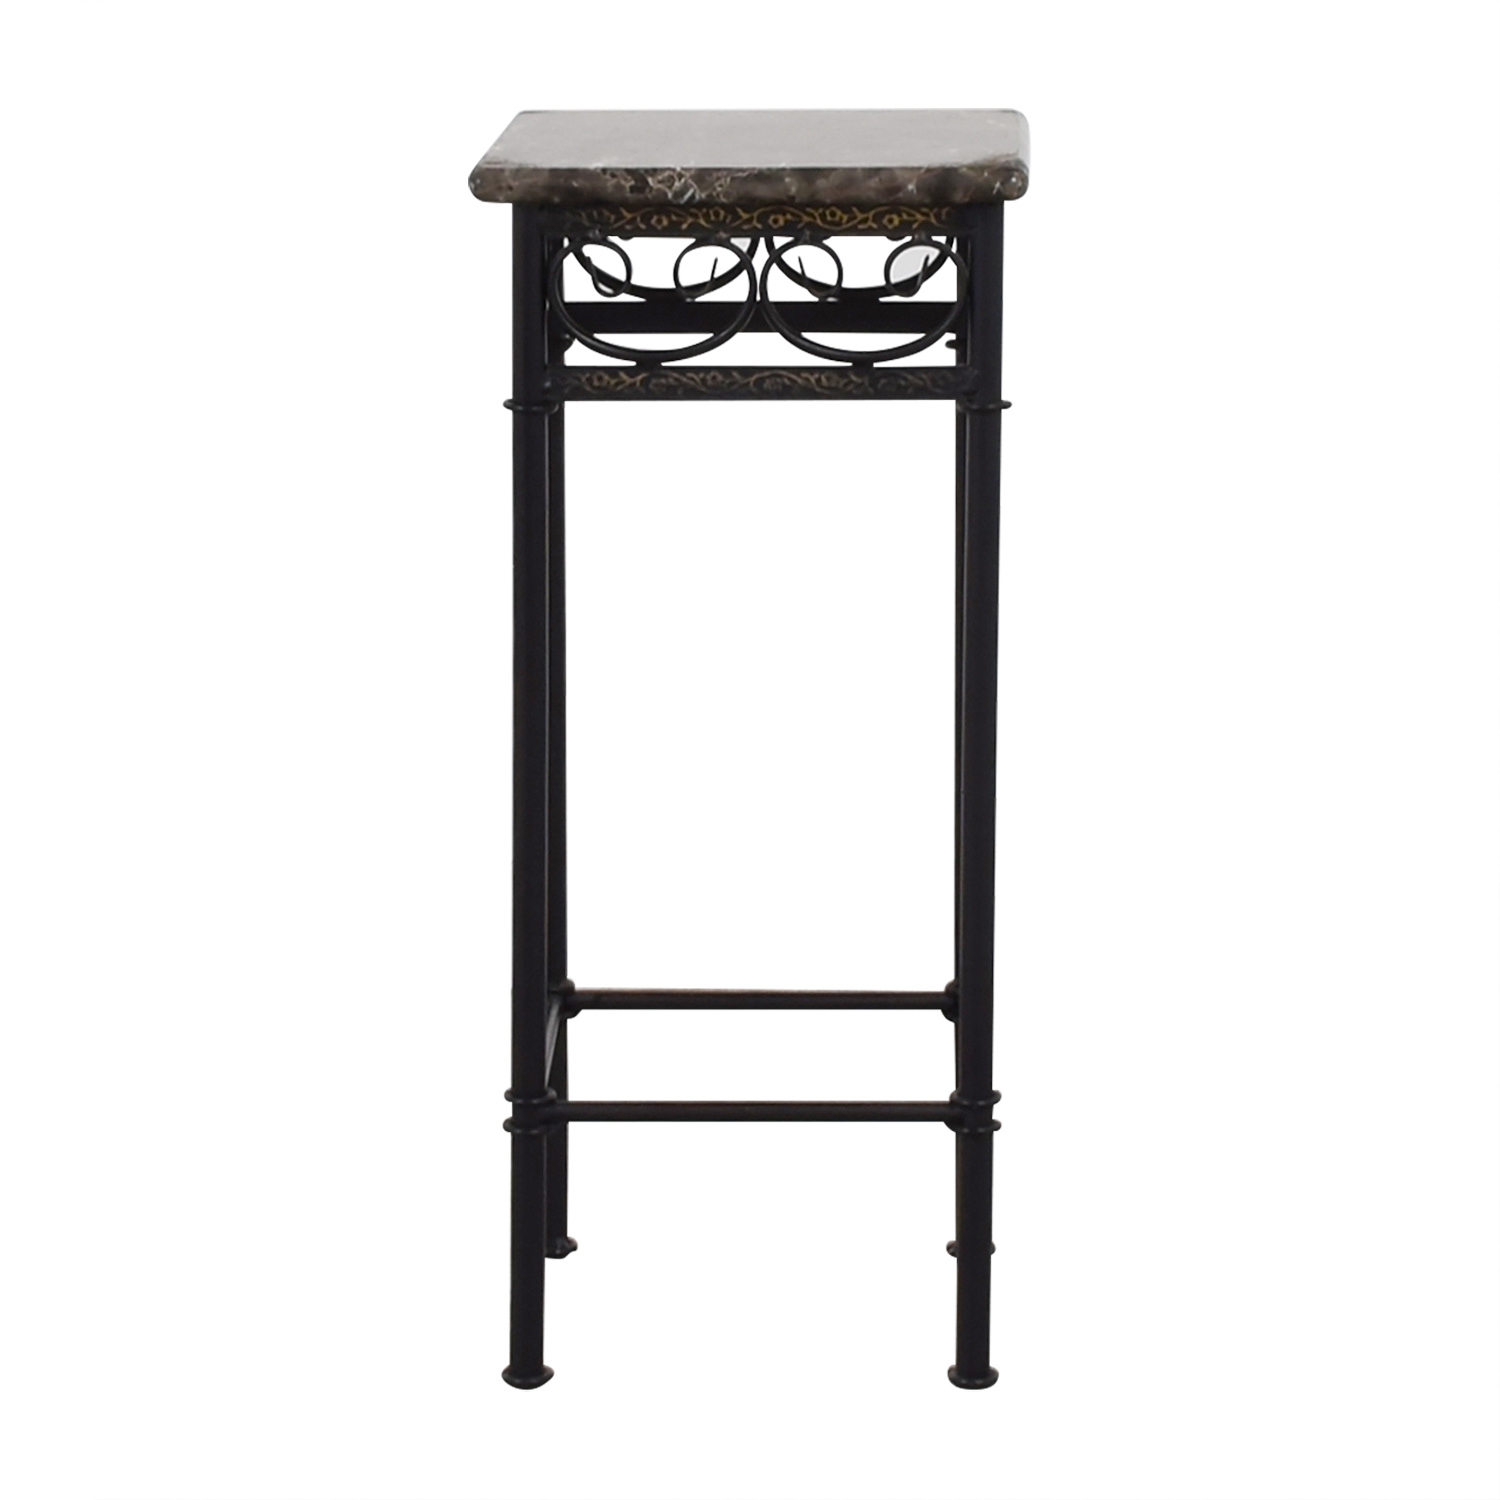 black metal accent table monarch off faux marble with base patio outdoor dining kitchen and room chairs hanging floor lamp vintage sofa umbrella lights diy concrete razer mouse